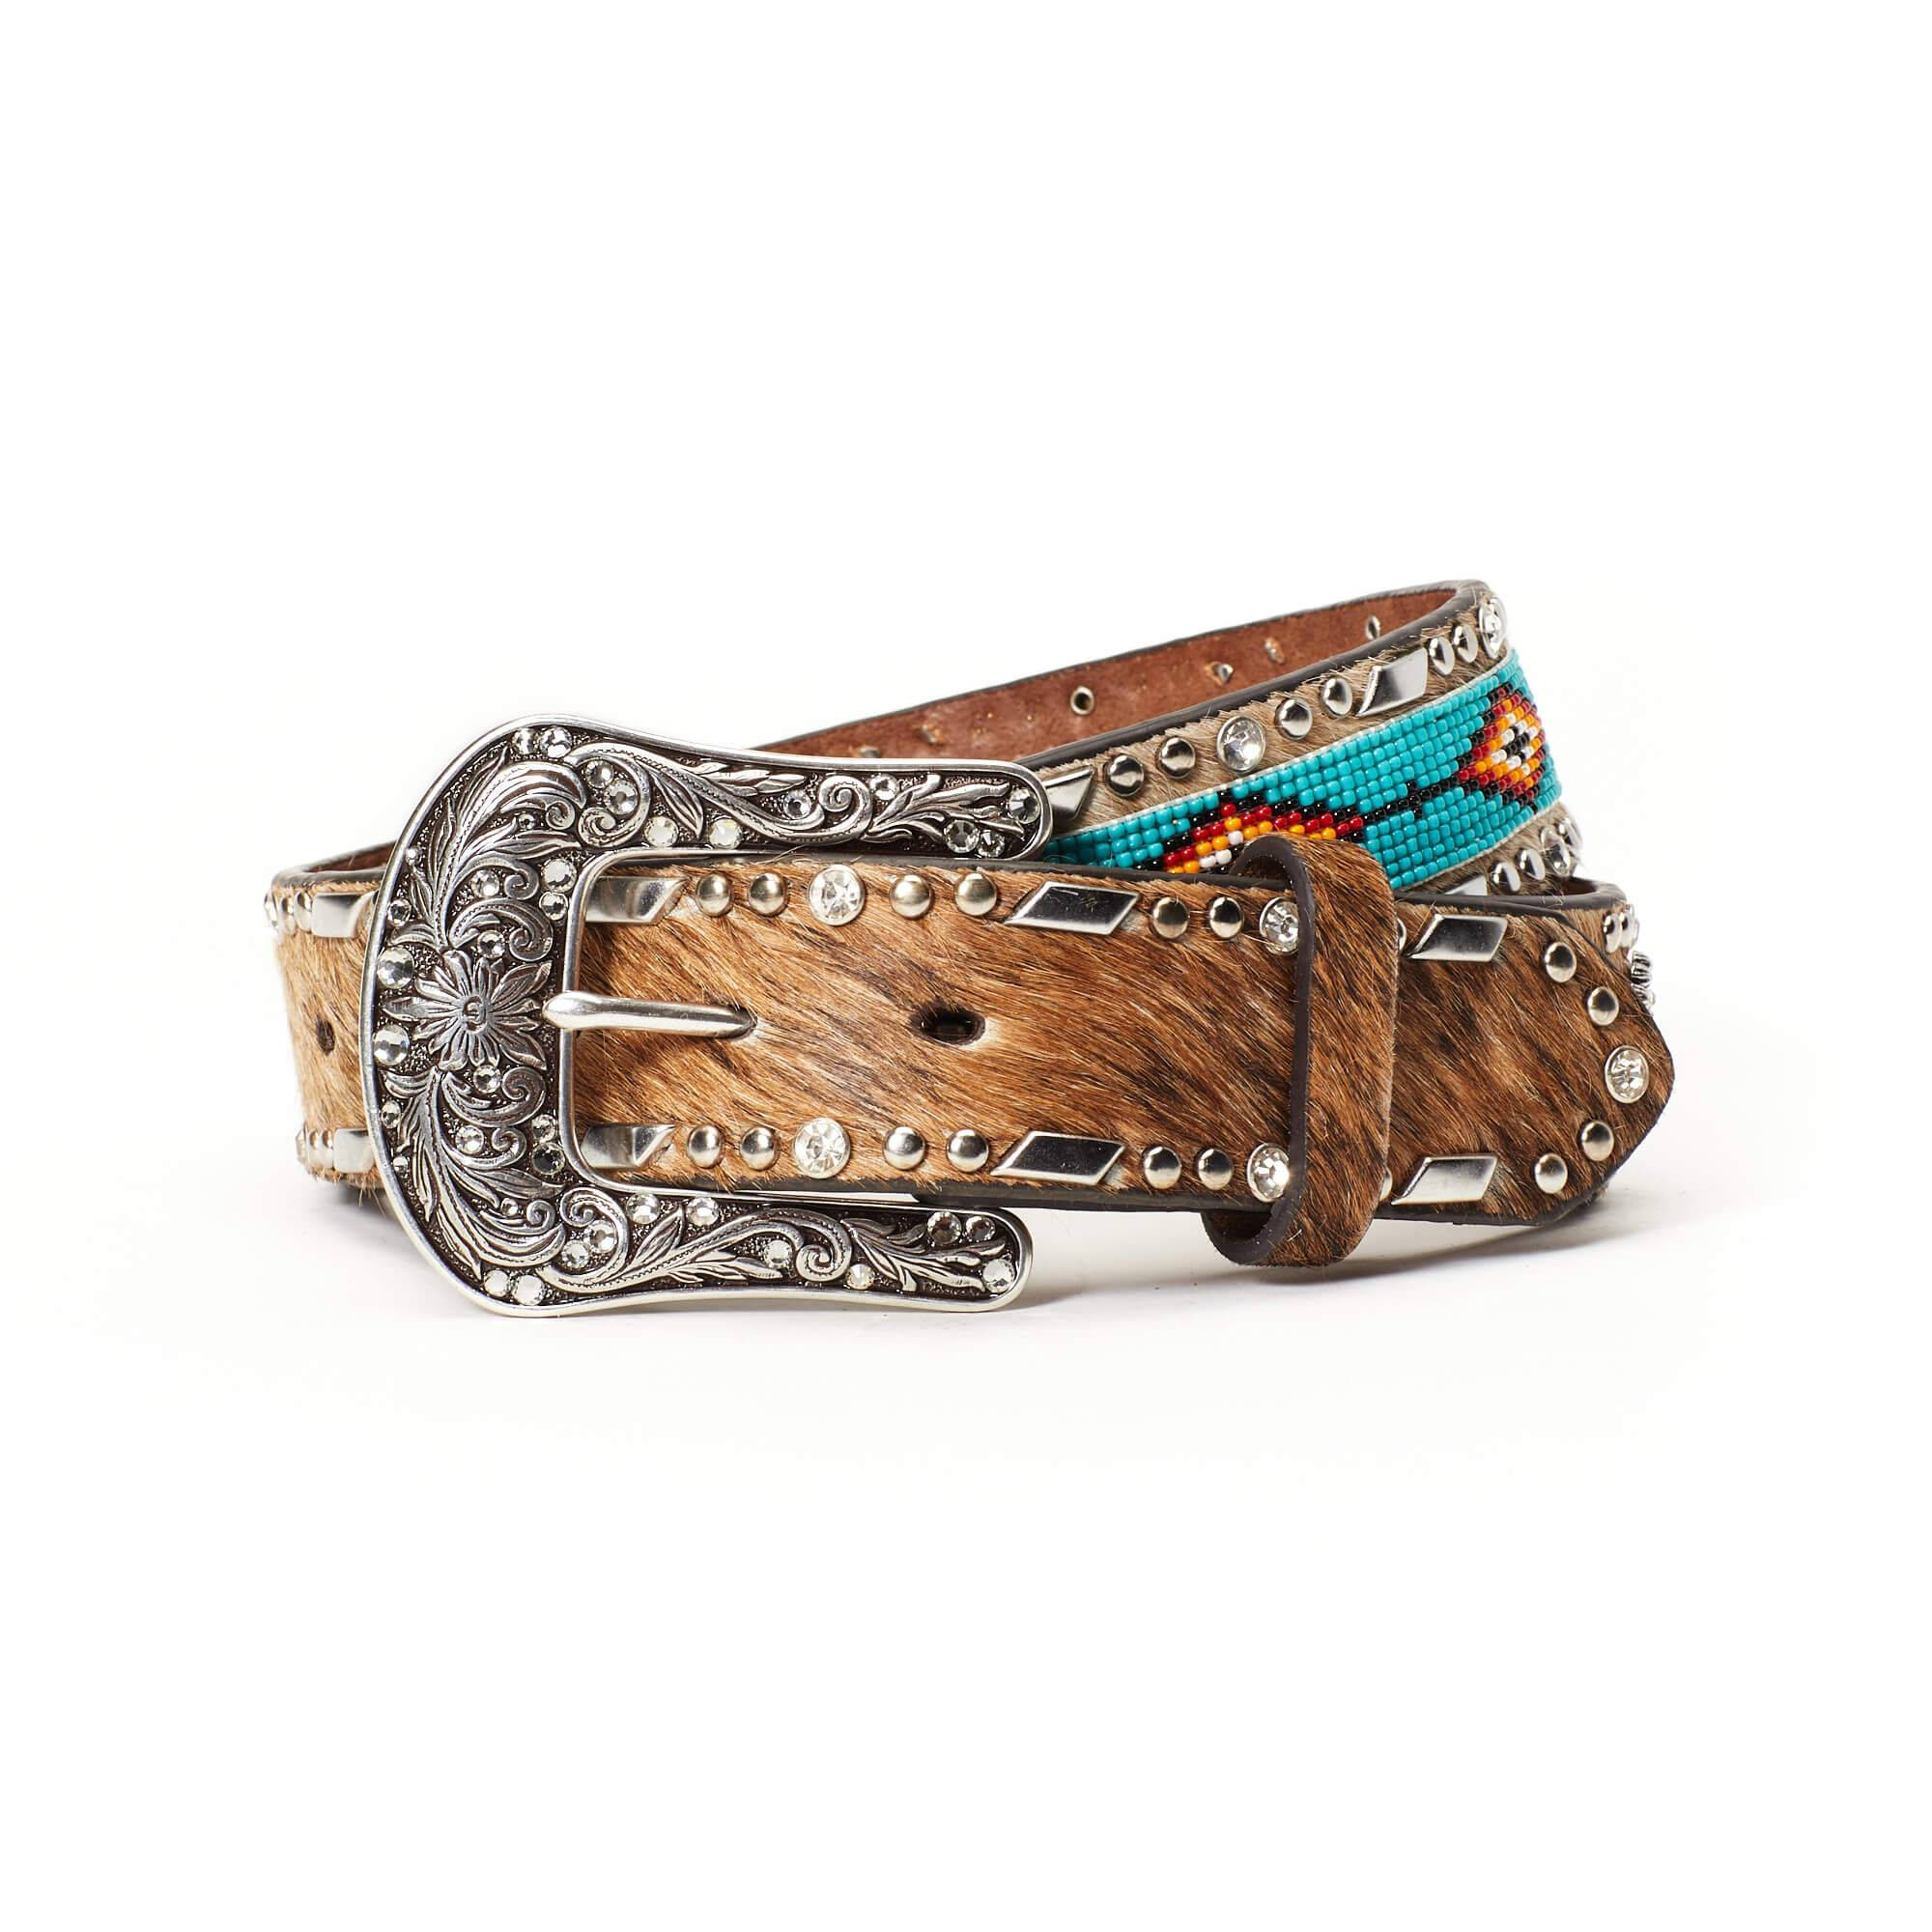 """Ariat Women's A.1 1/2""""mcchvrntqflrwcnctn Belt in Beaded Brown Leather, Small by Ariat"""